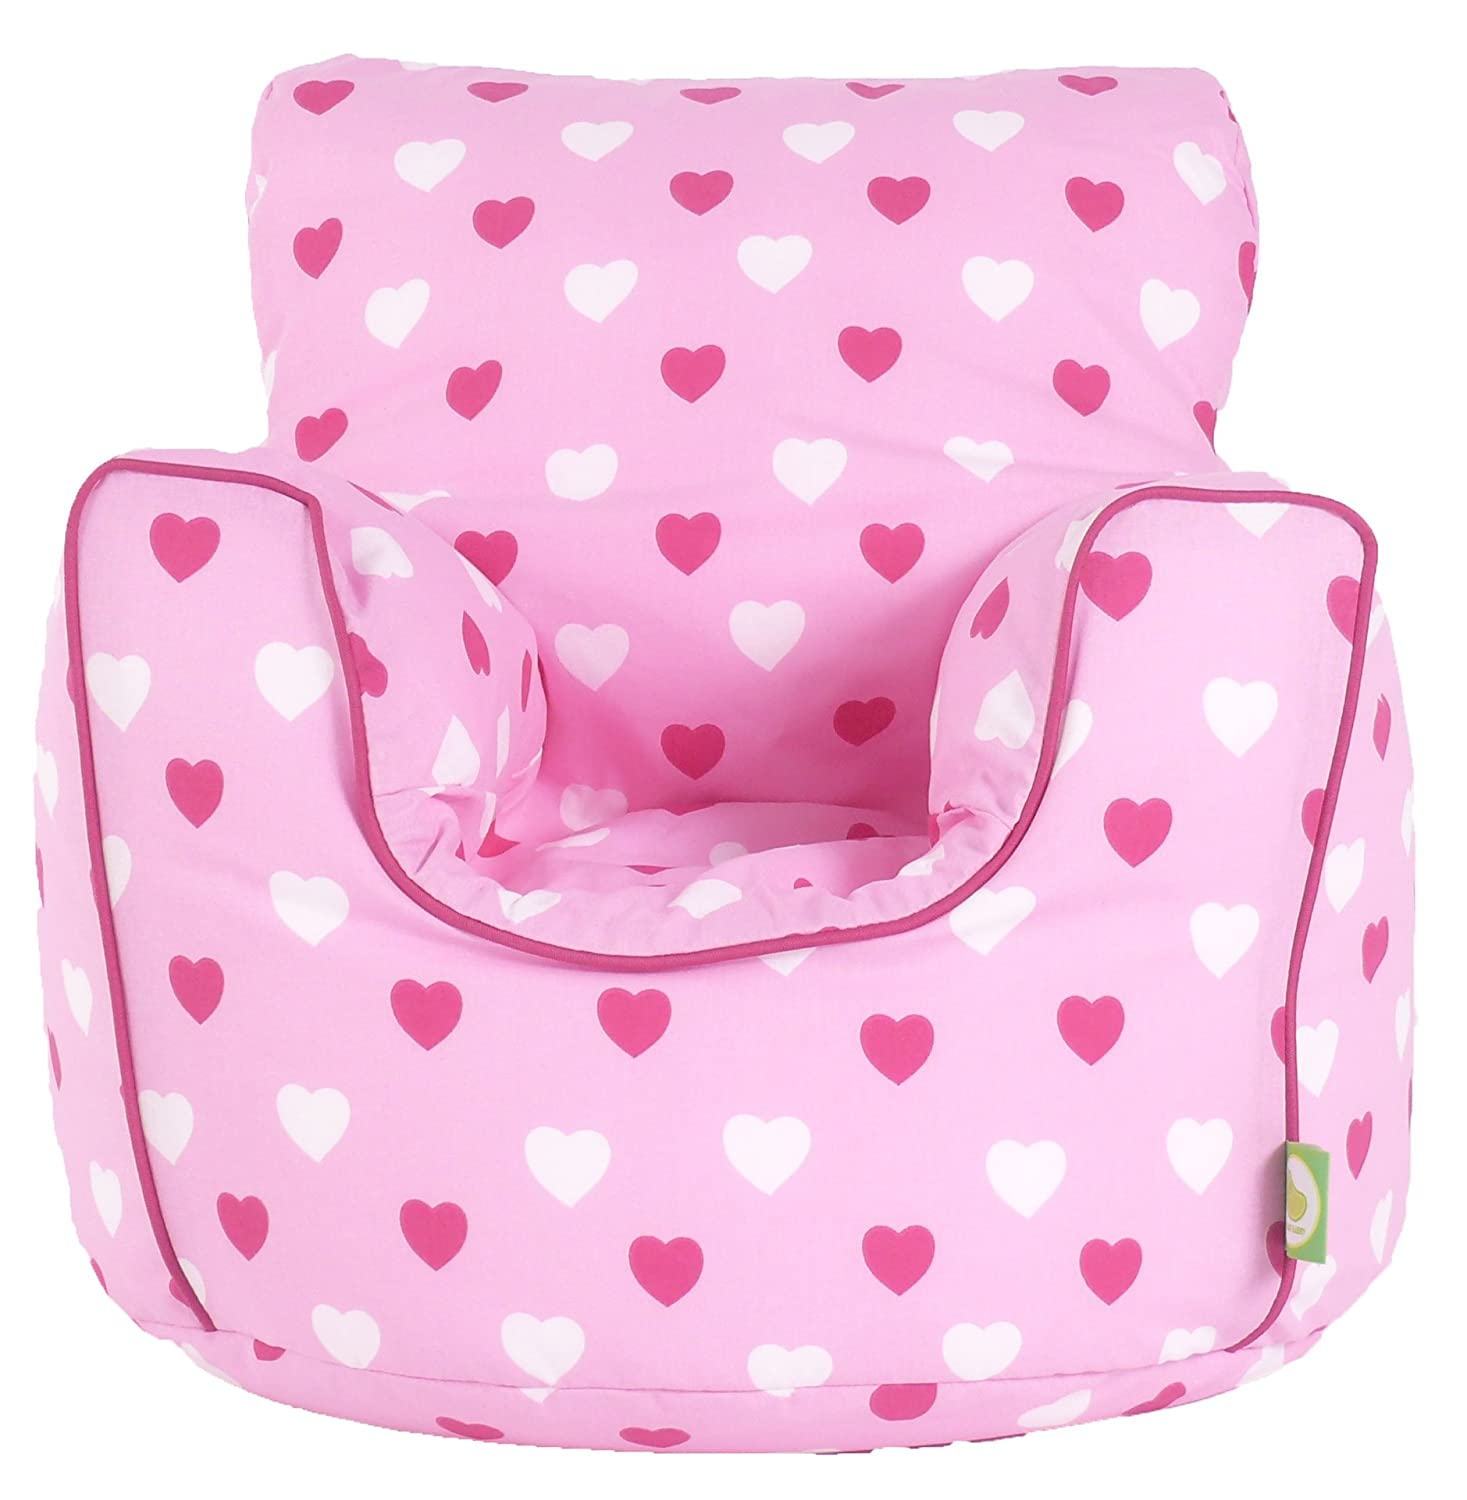 Cotton Pink Hearts Girls Bean Bag Arm Chair with Beans Amazon